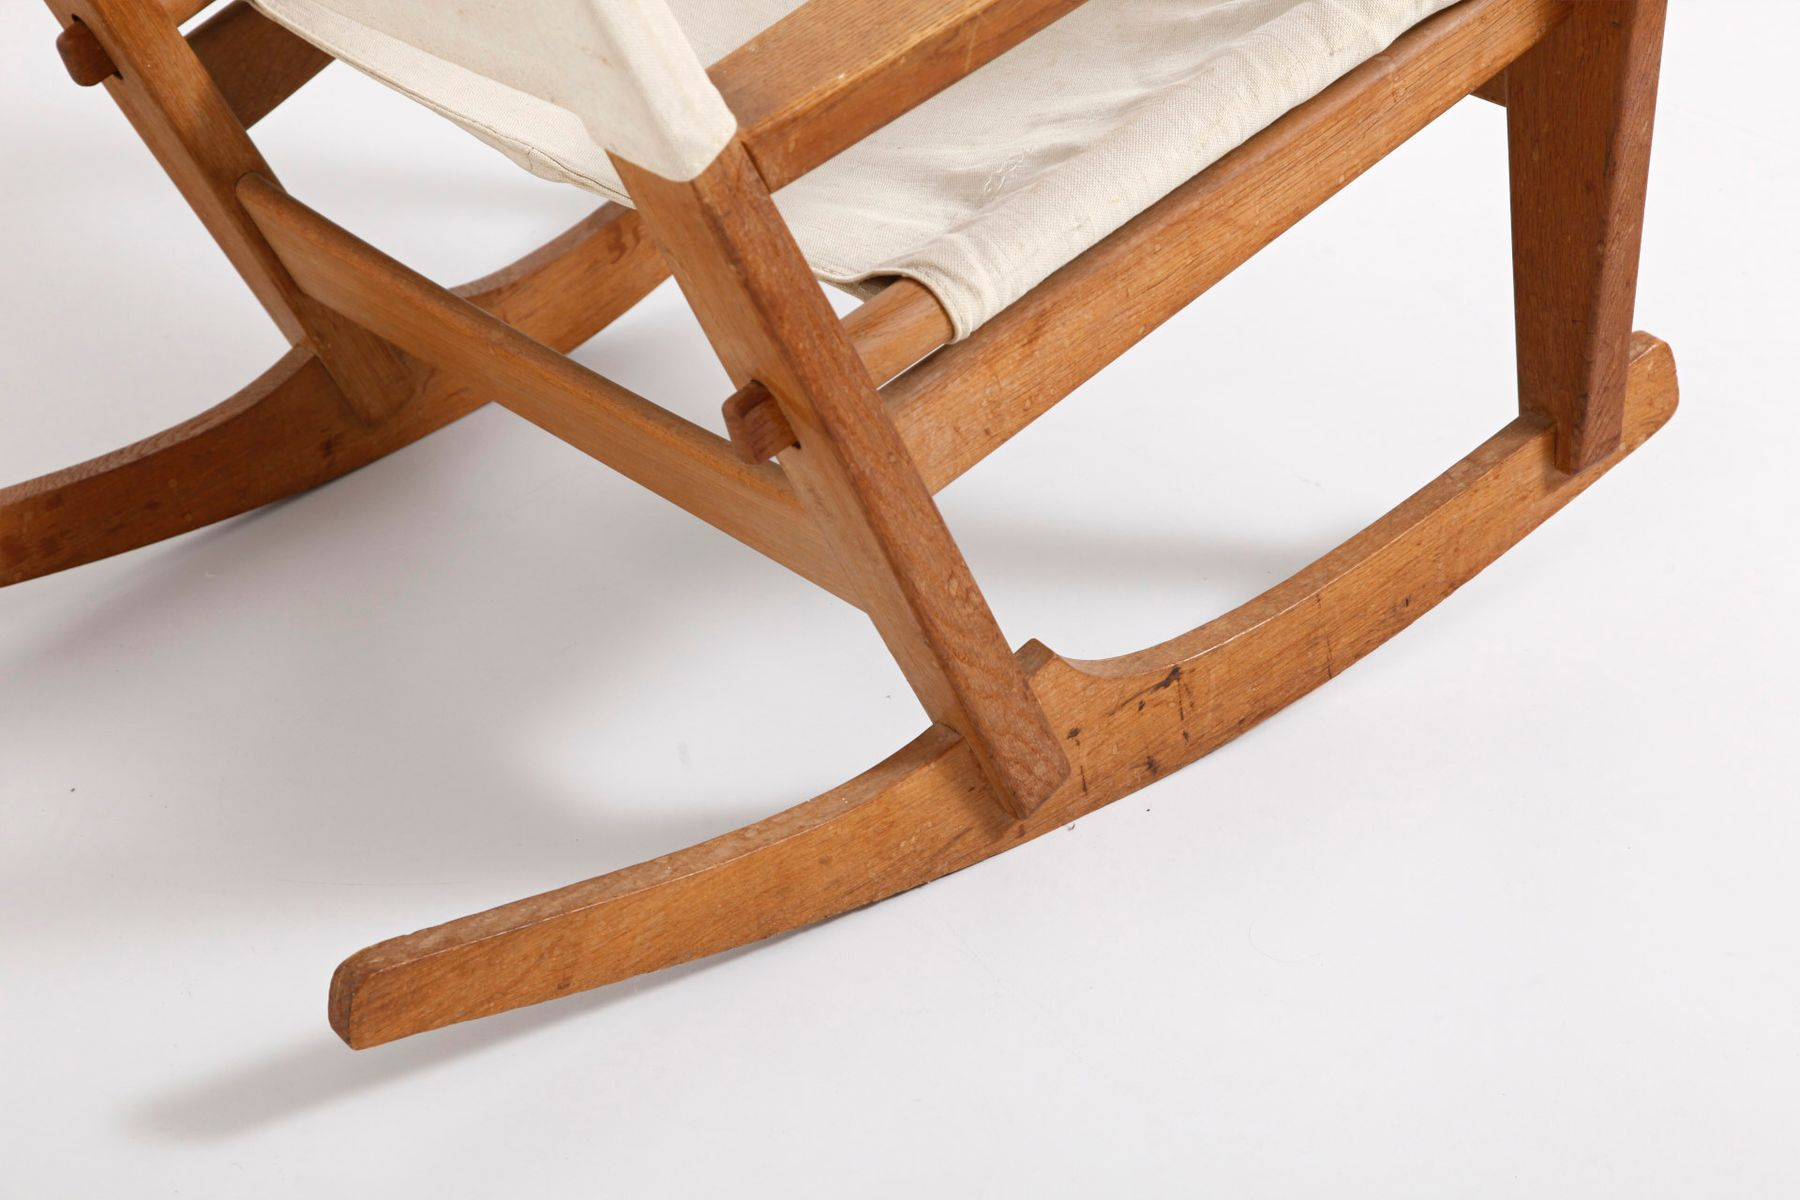 Keyhold GE673 Rocking Chair By Hans J. Wegner For Getama For Sale At . Full resolution‎  portraiture, nominally Width 1800 Height 1200 pixels, portraiture with #4D2A14.